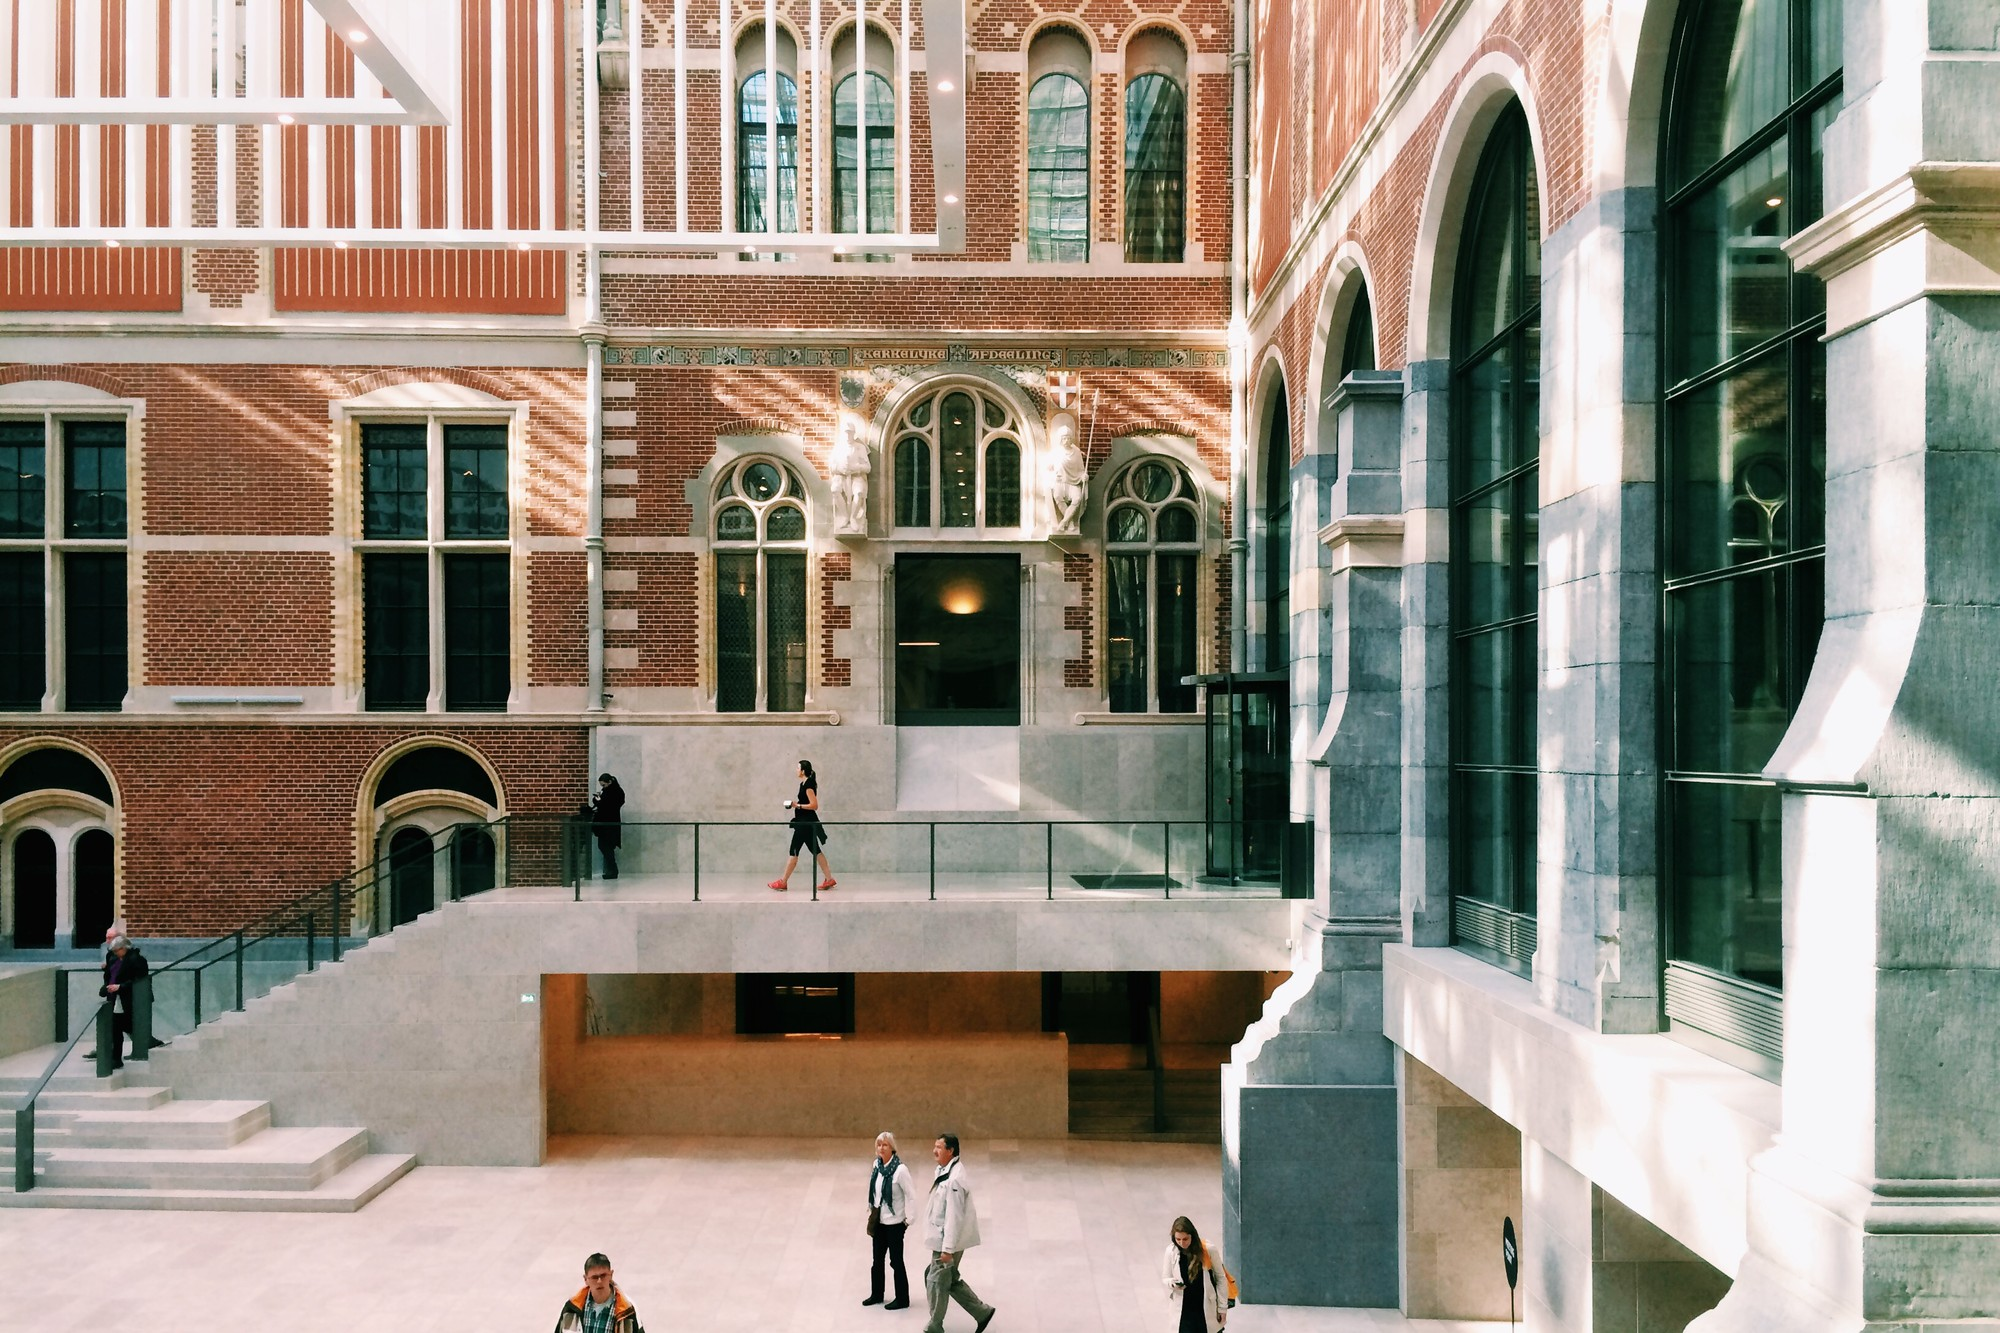 Rijksmuseum Revisited: The Dutch National Museum One Year On, Atrium, April 2014. Image © James Taylor-Foster